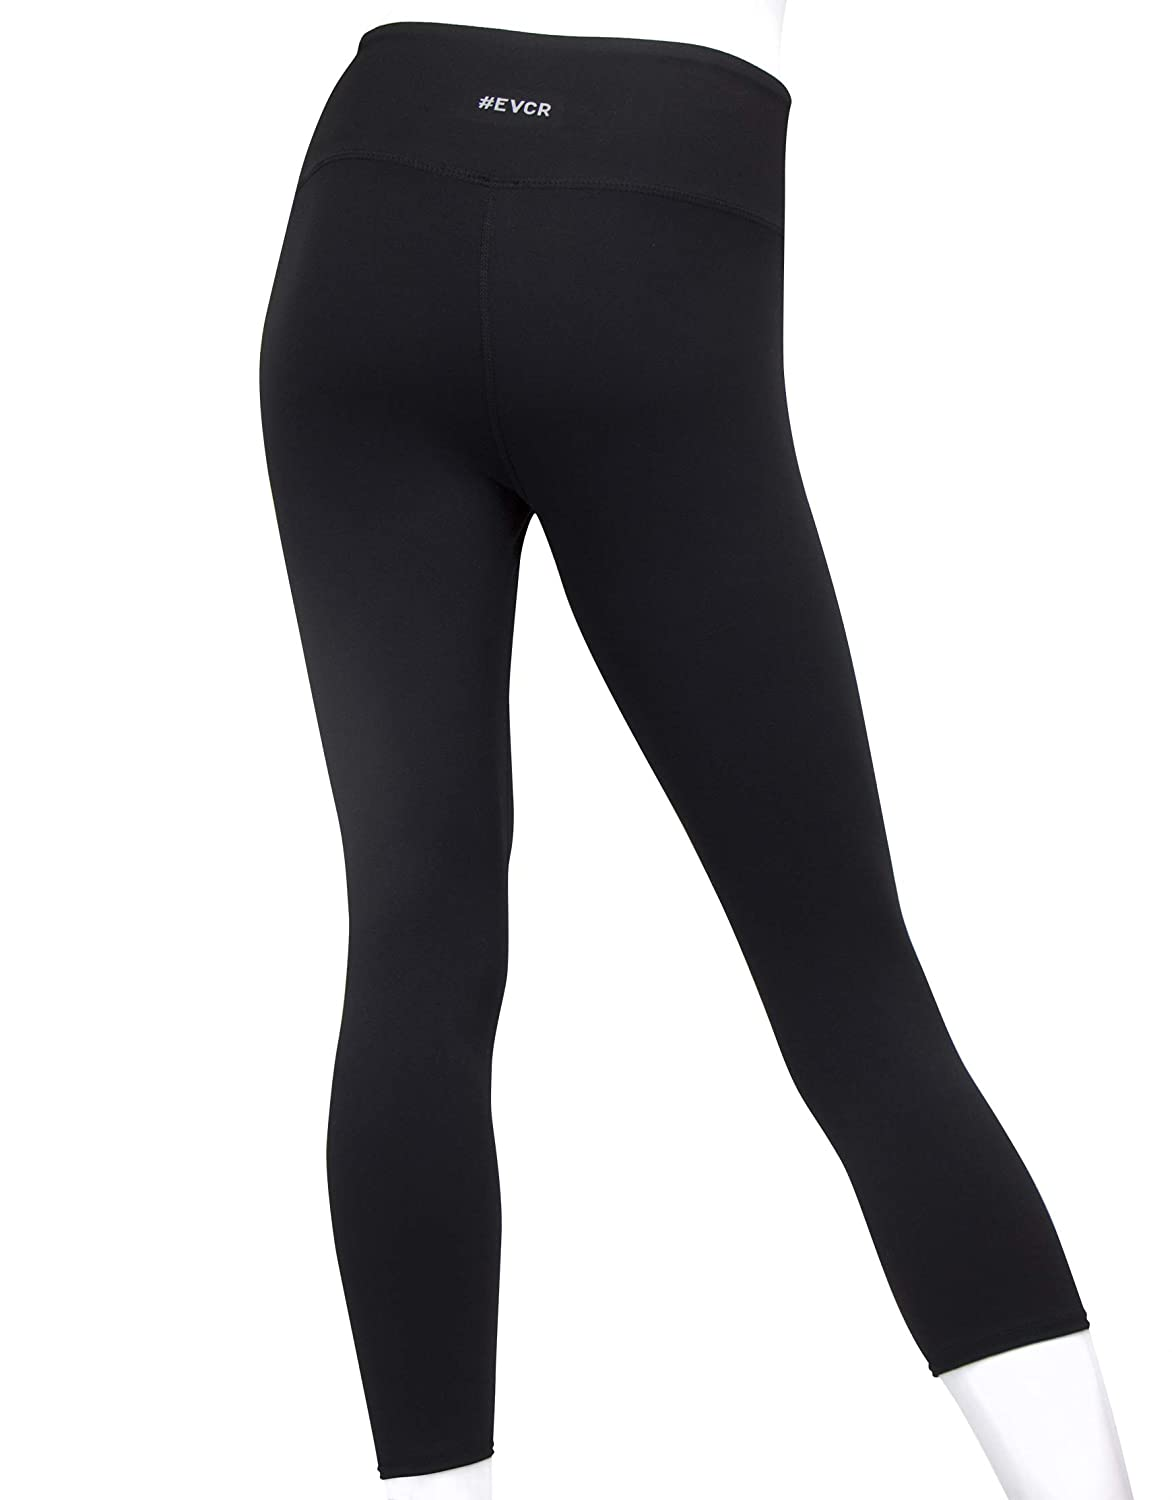 Non See Through Soft Athletic Yoga Pants for Workout EVCR Capri Leggings for Women